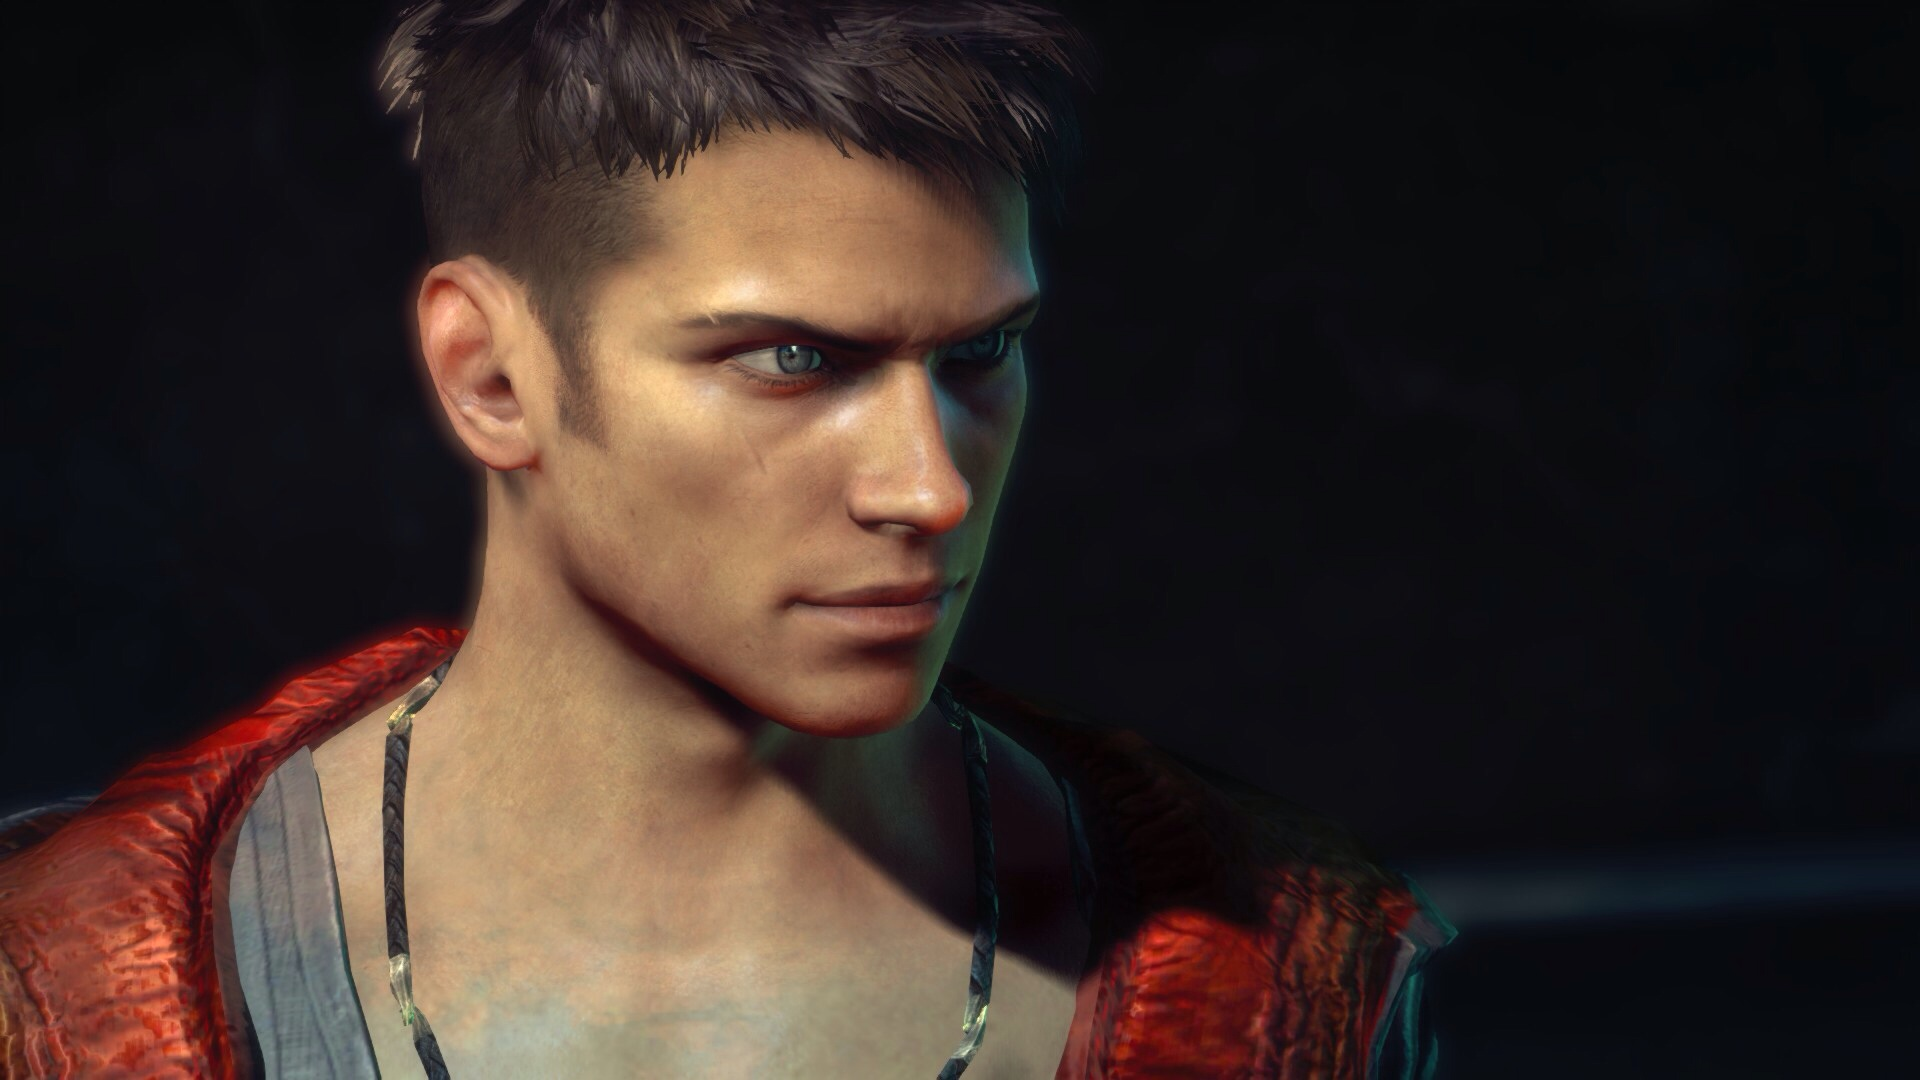 dante dmc 5 enter - photo #5